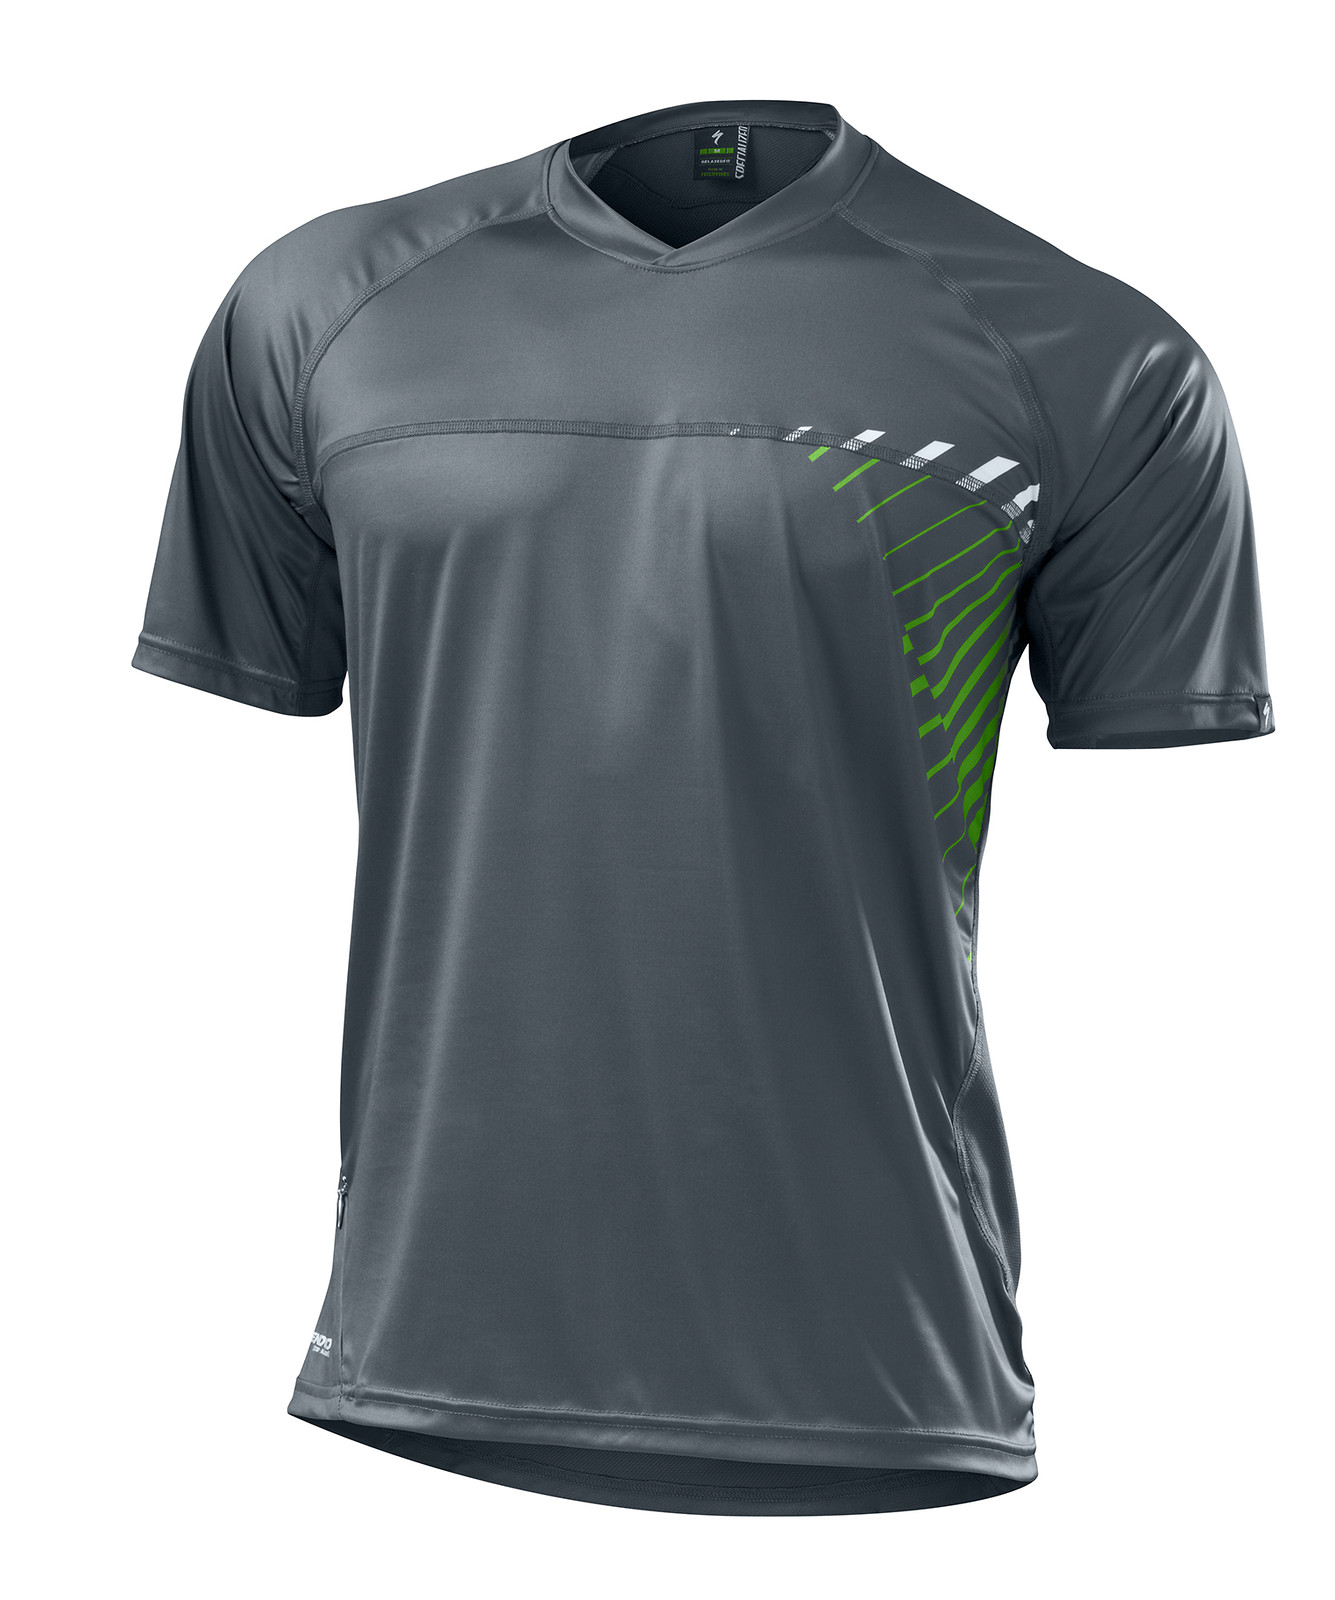 Specialized Enduro Comp Jersey - Carbon:Moto Green